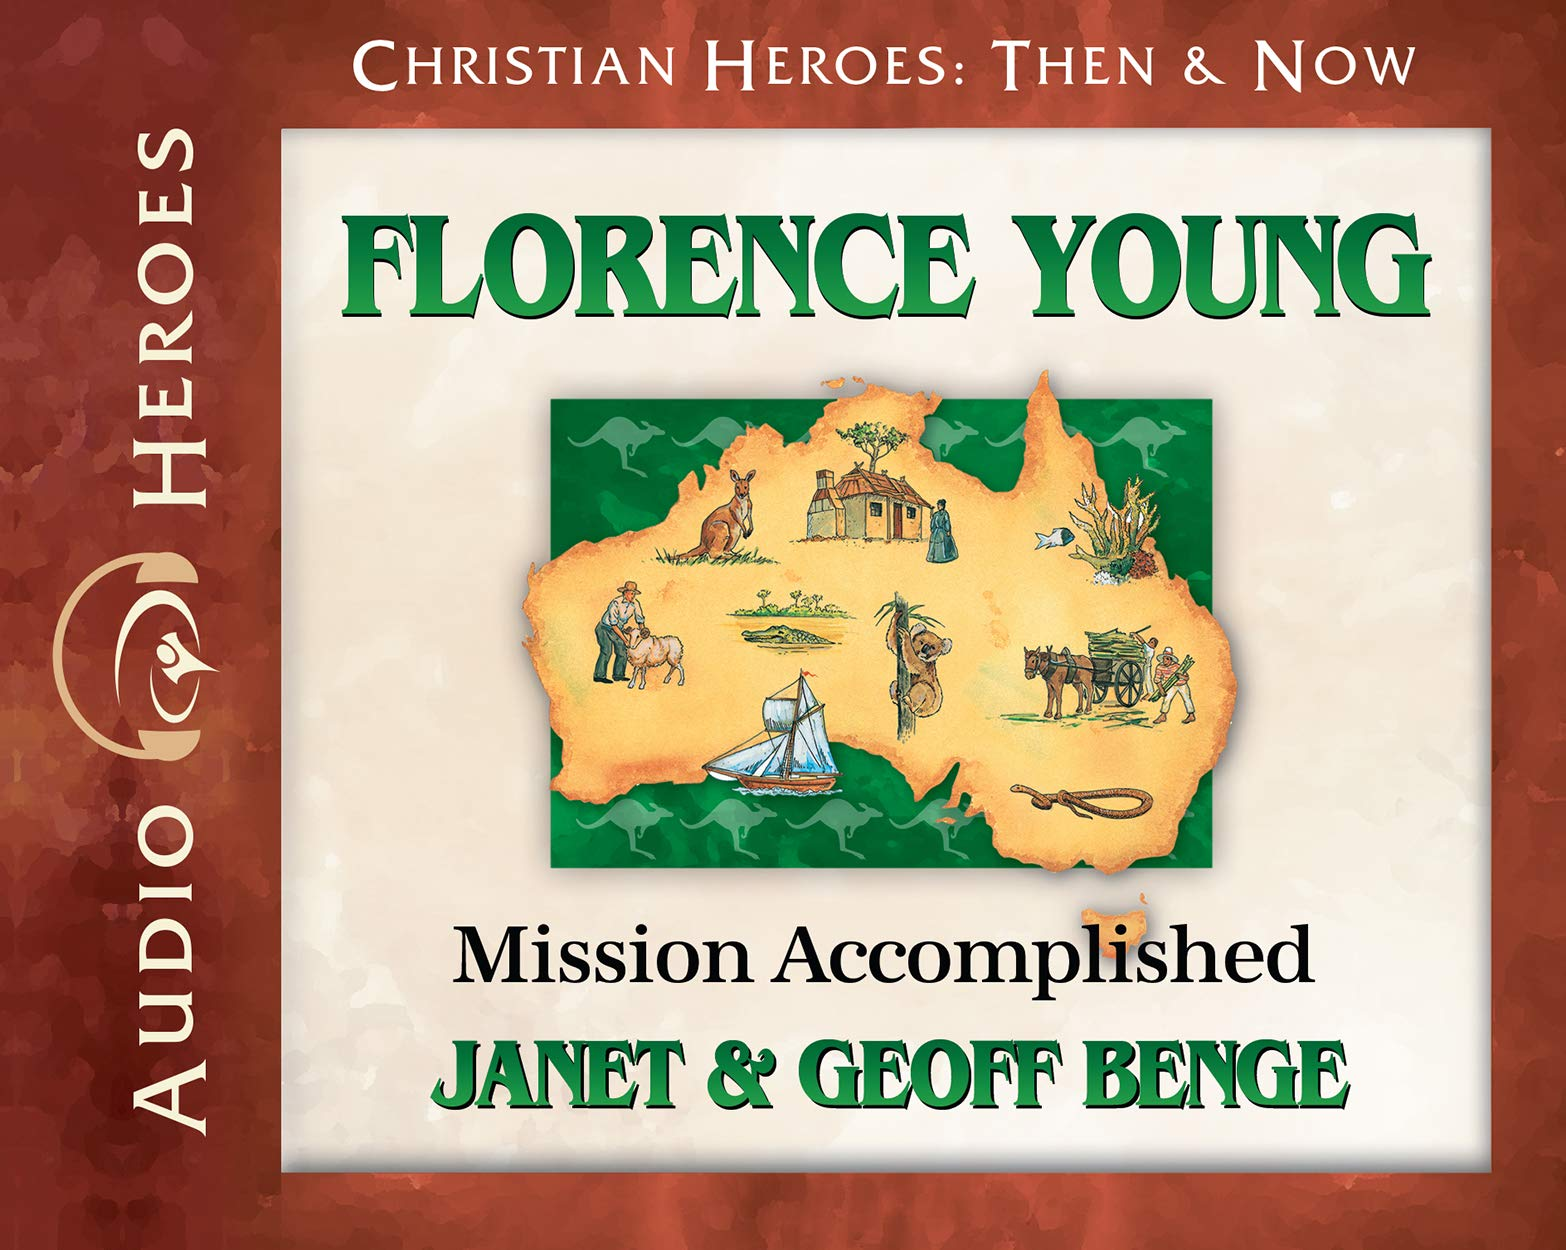 Florence Young Audiobook: Mission Accomplished (Christian Heroes: Then & Now)